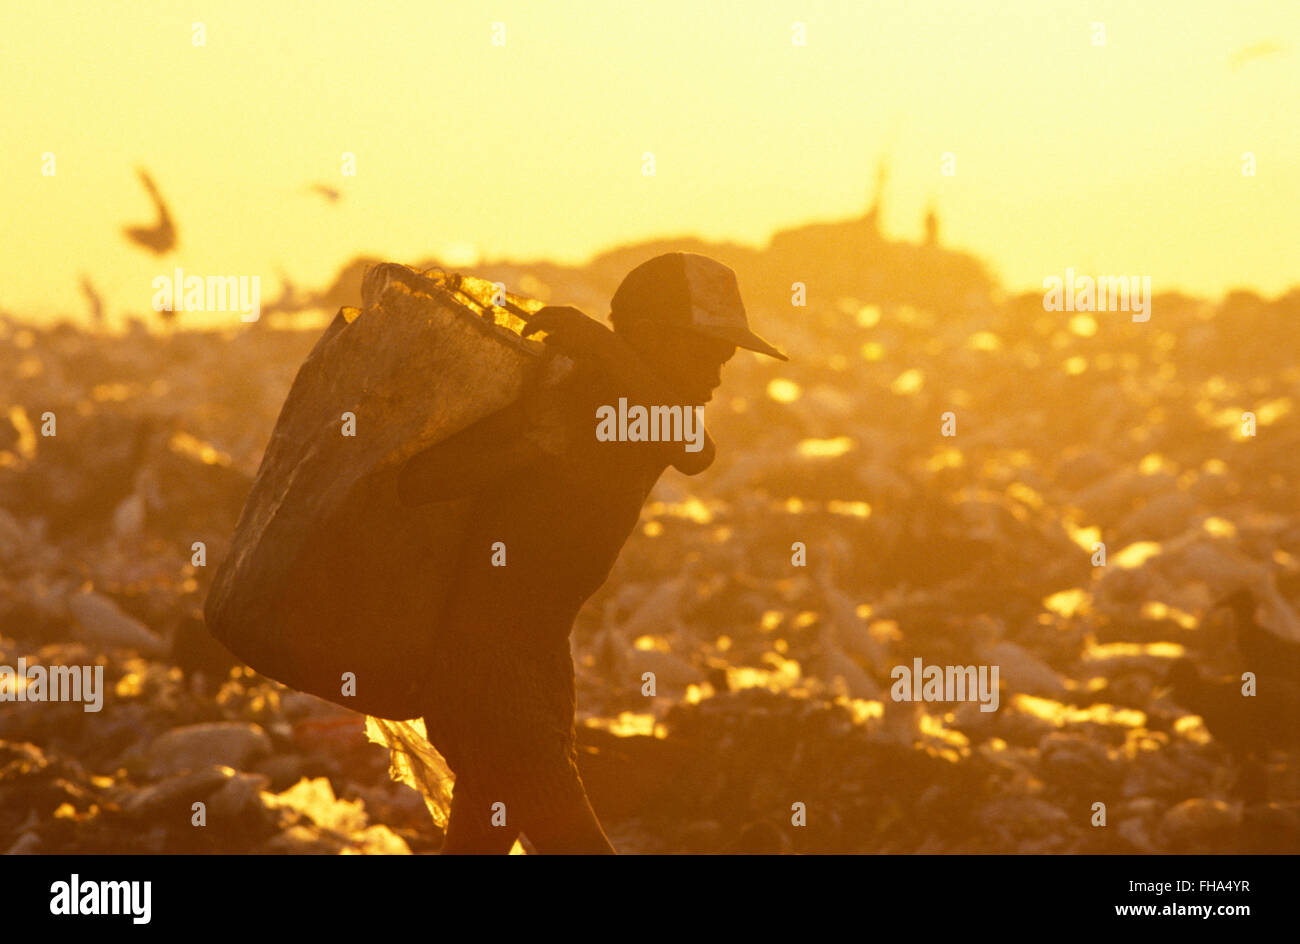 Pickers sort through garbage finding recyclables as a means of survival at Metropolitan Landfill of Jardim Gramacho - Stock Image